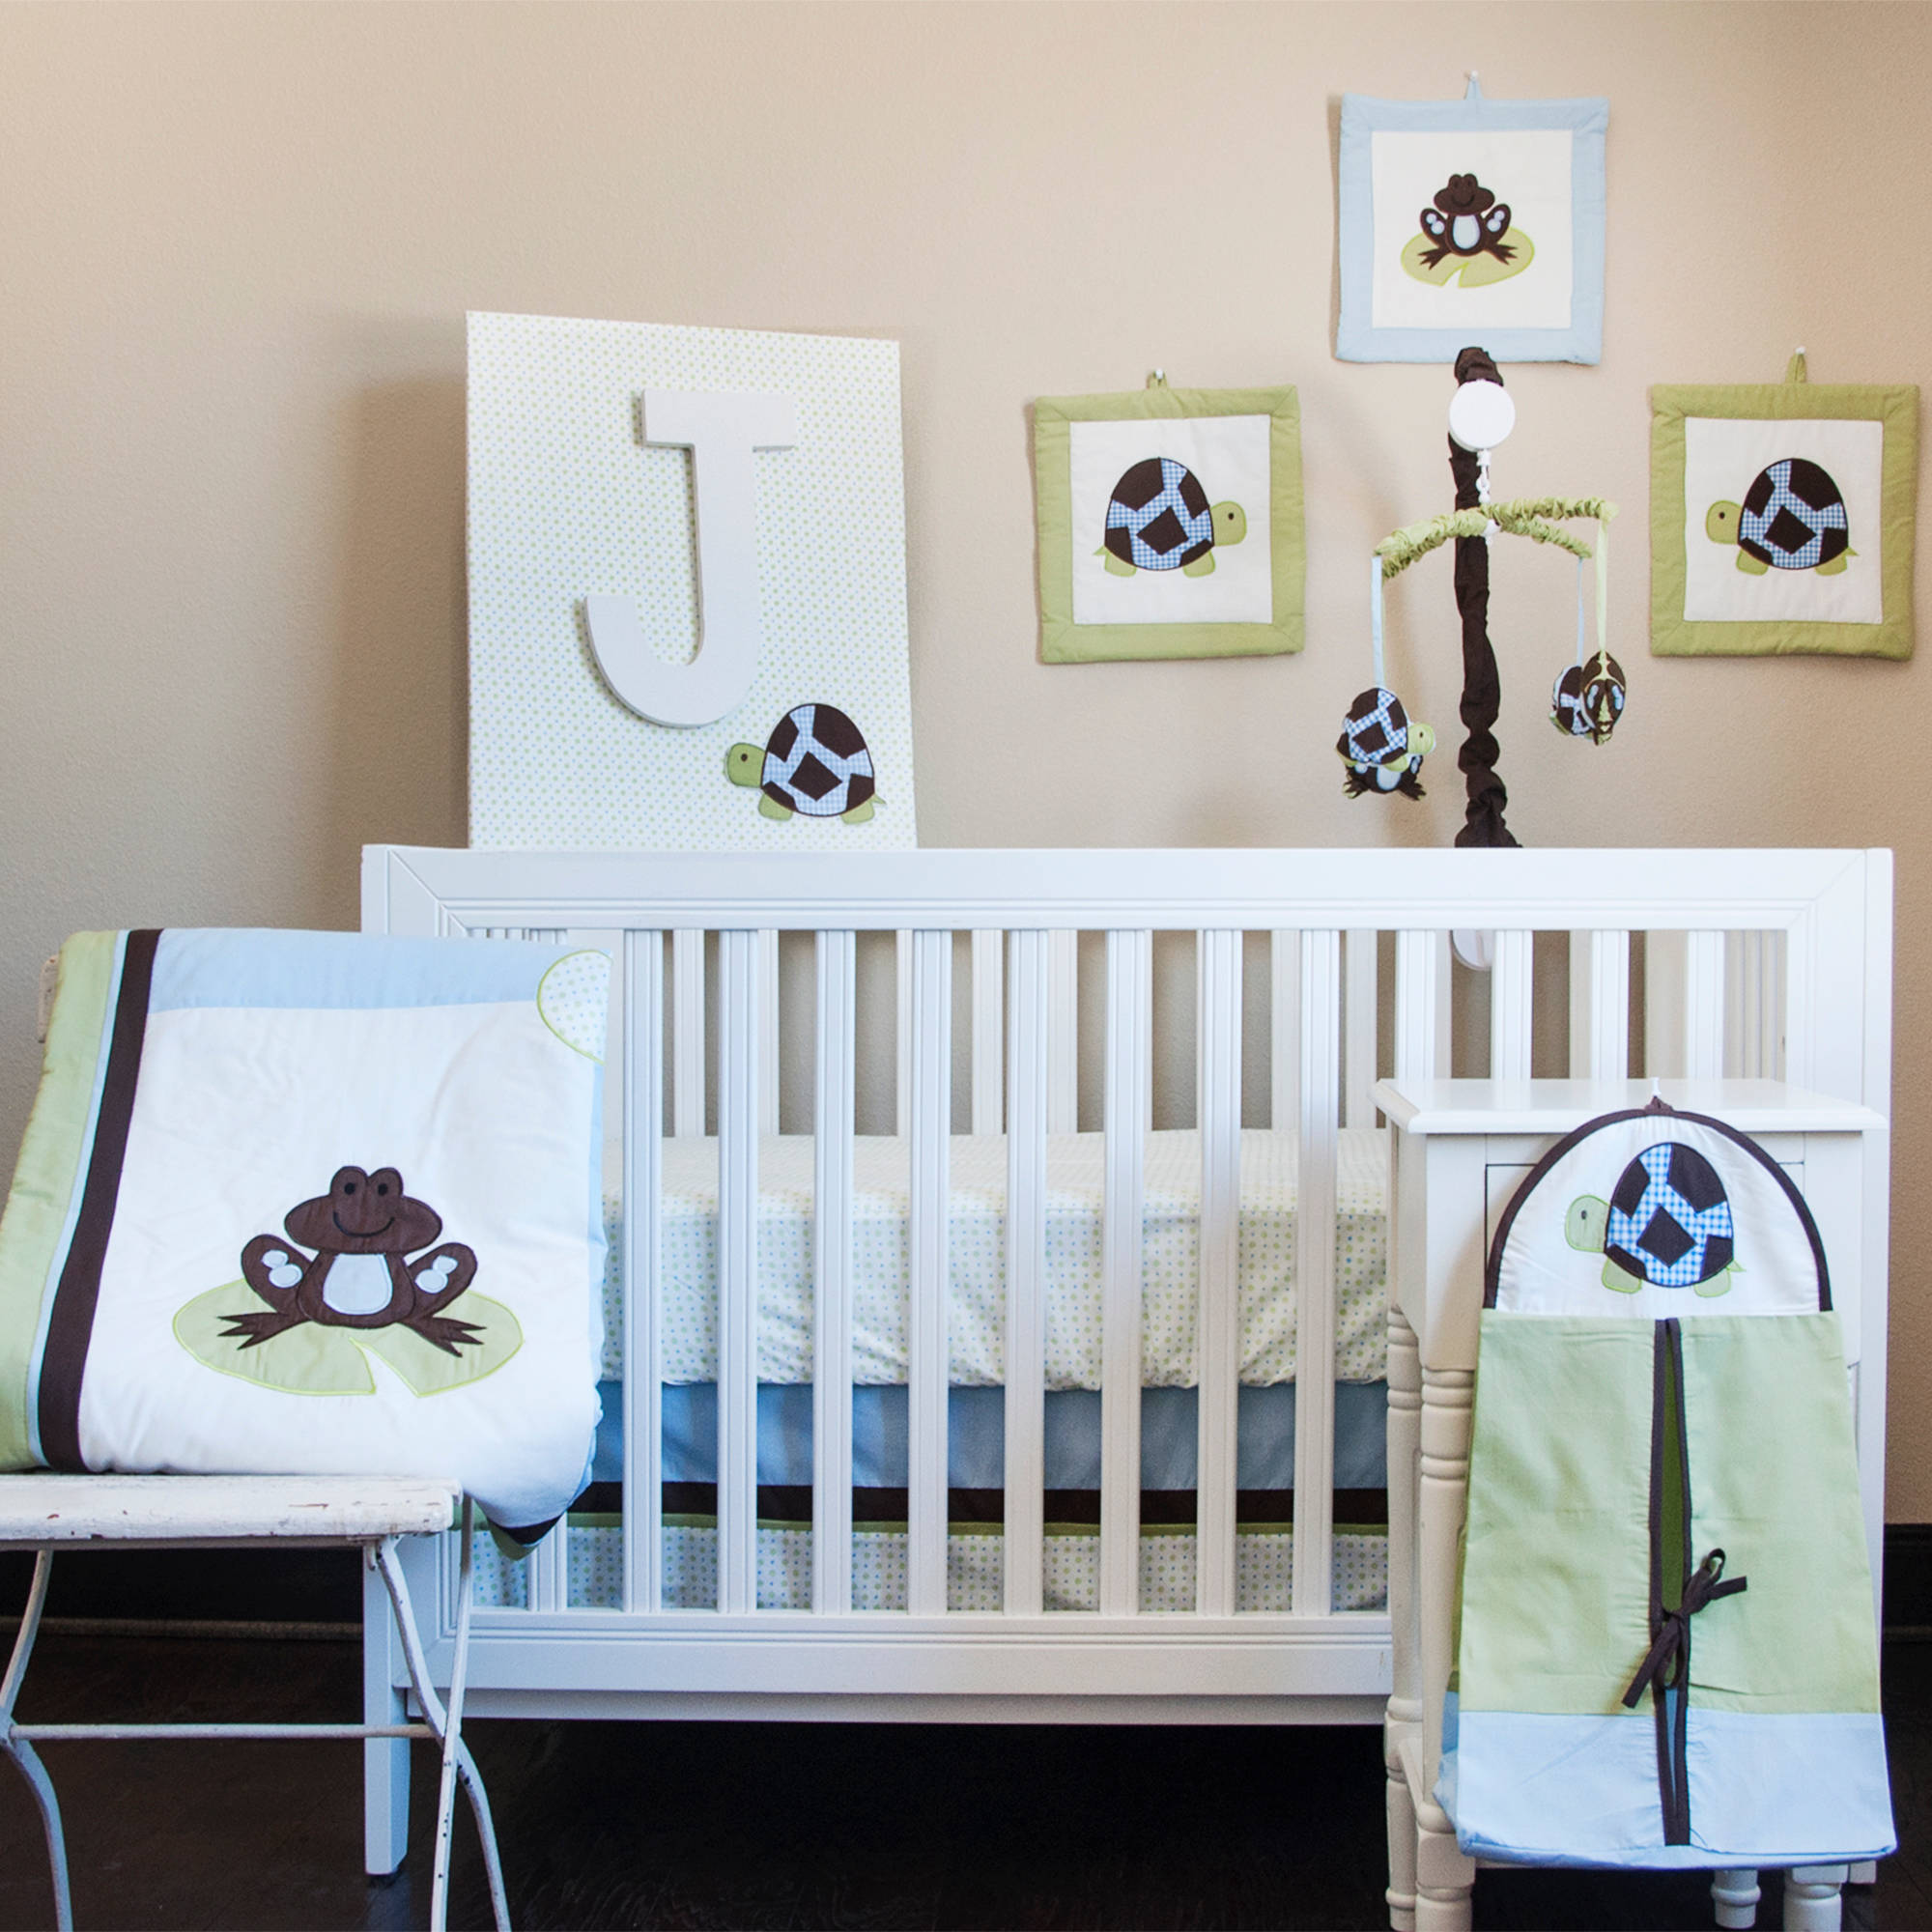 Mr. and Mrs. Pond 10-Piece Nursery in a Bag Bedding Set